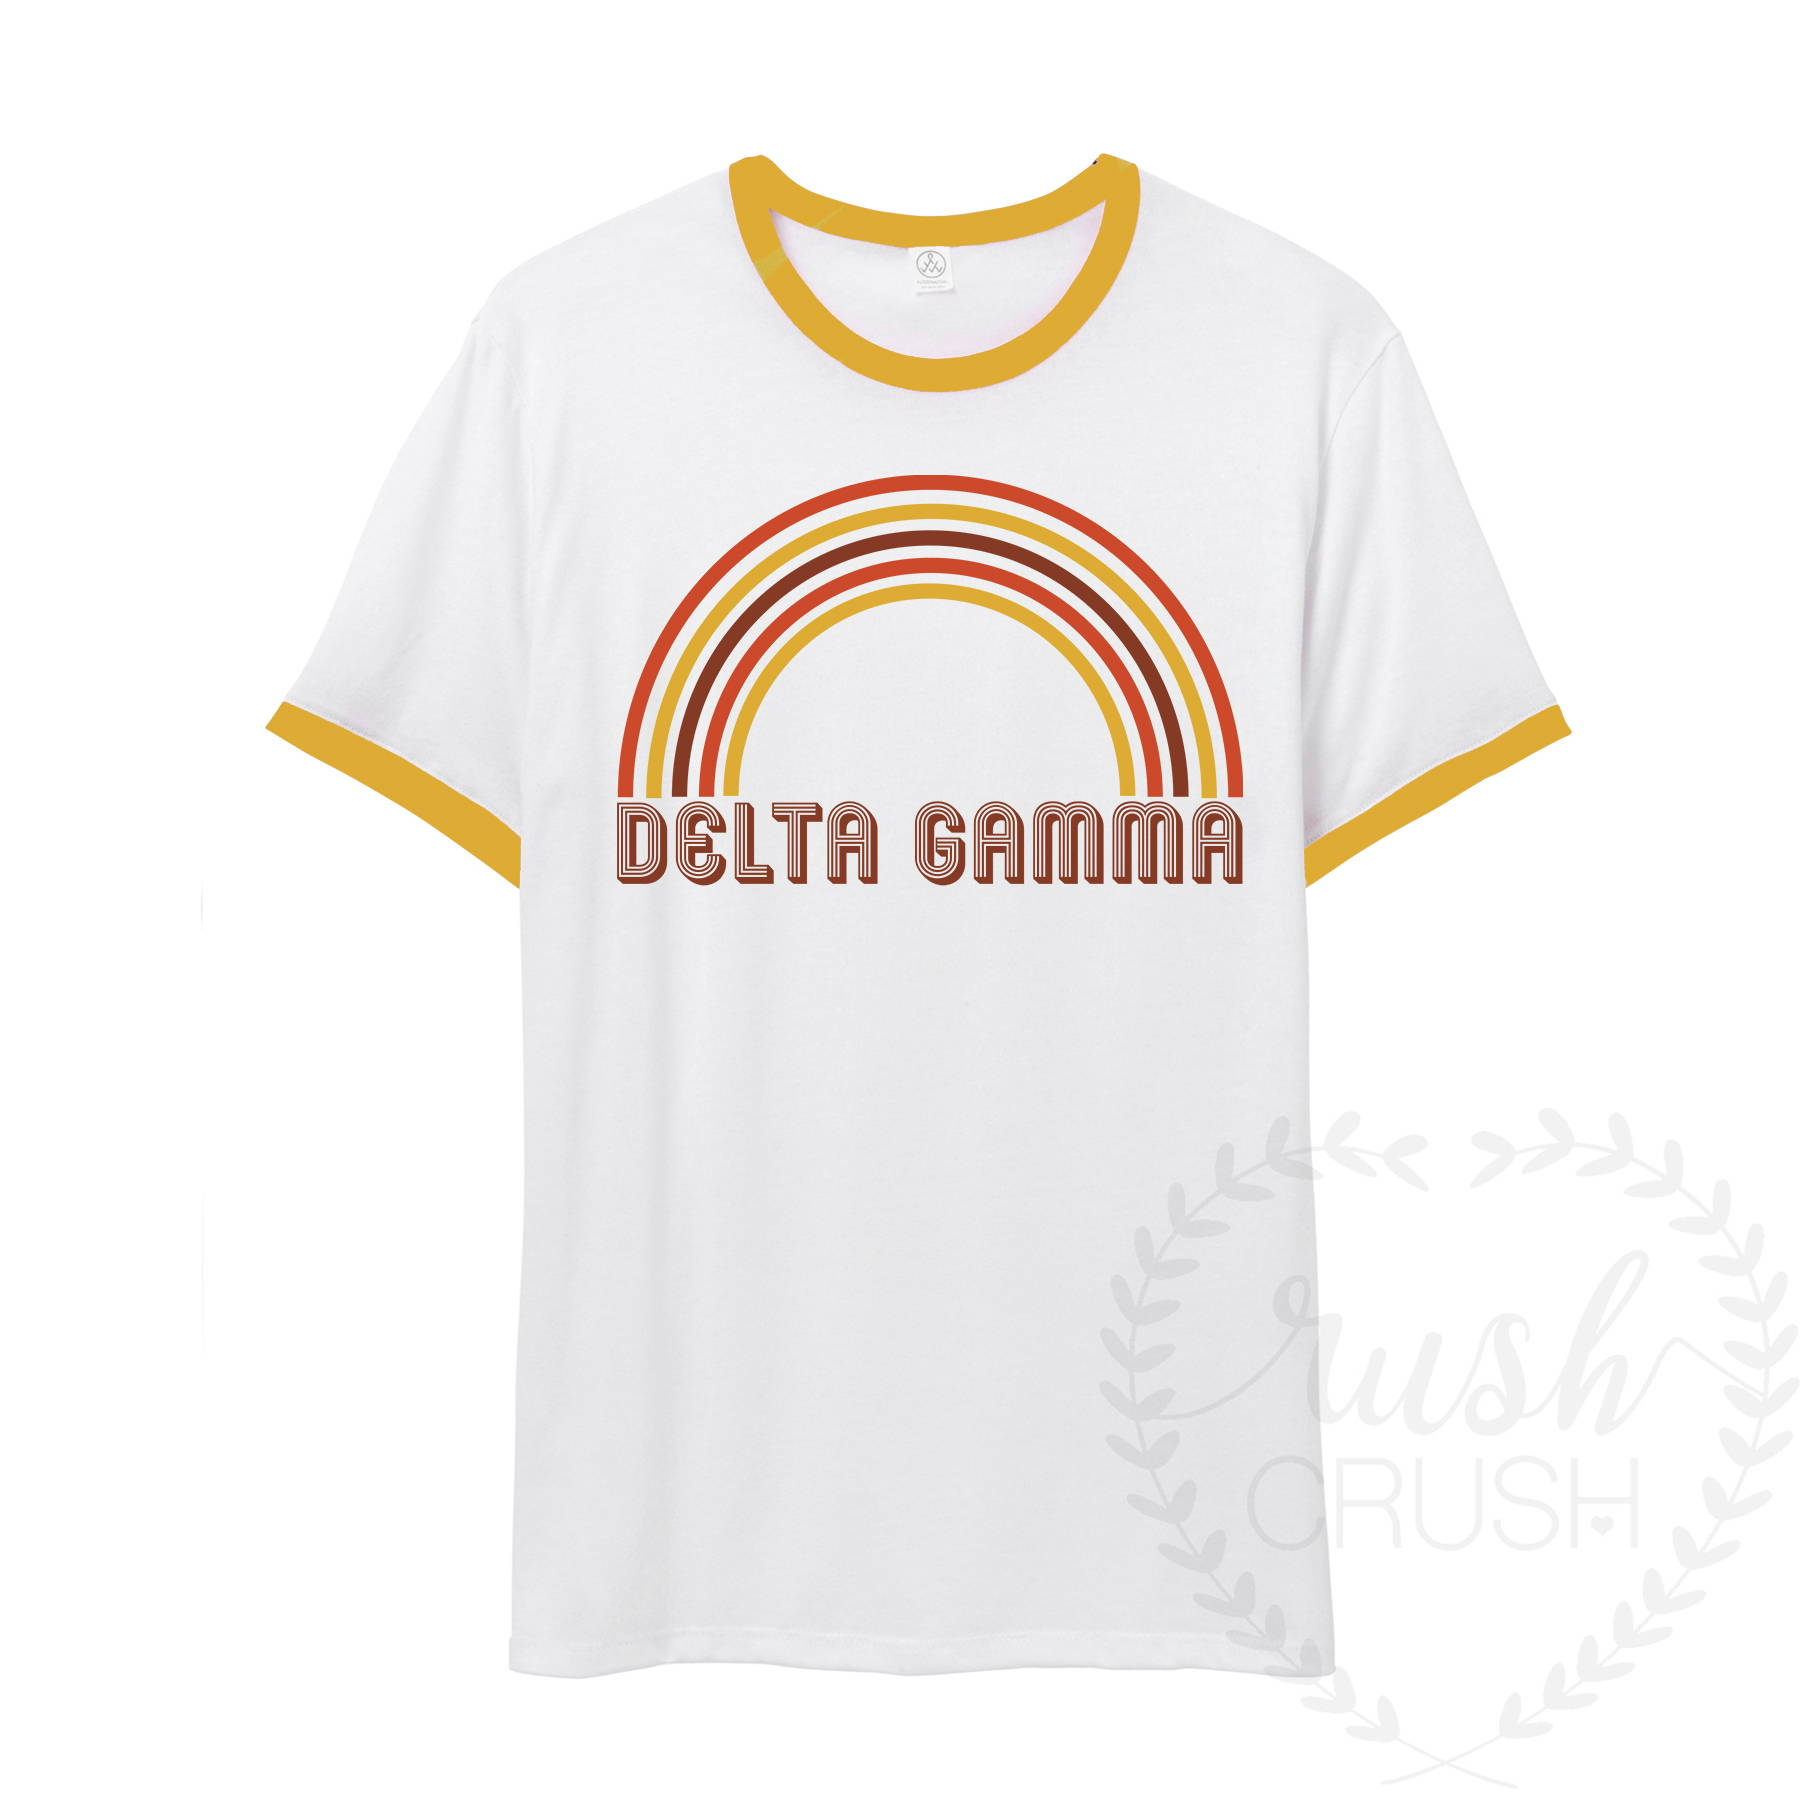 Delta Gamma Clothing